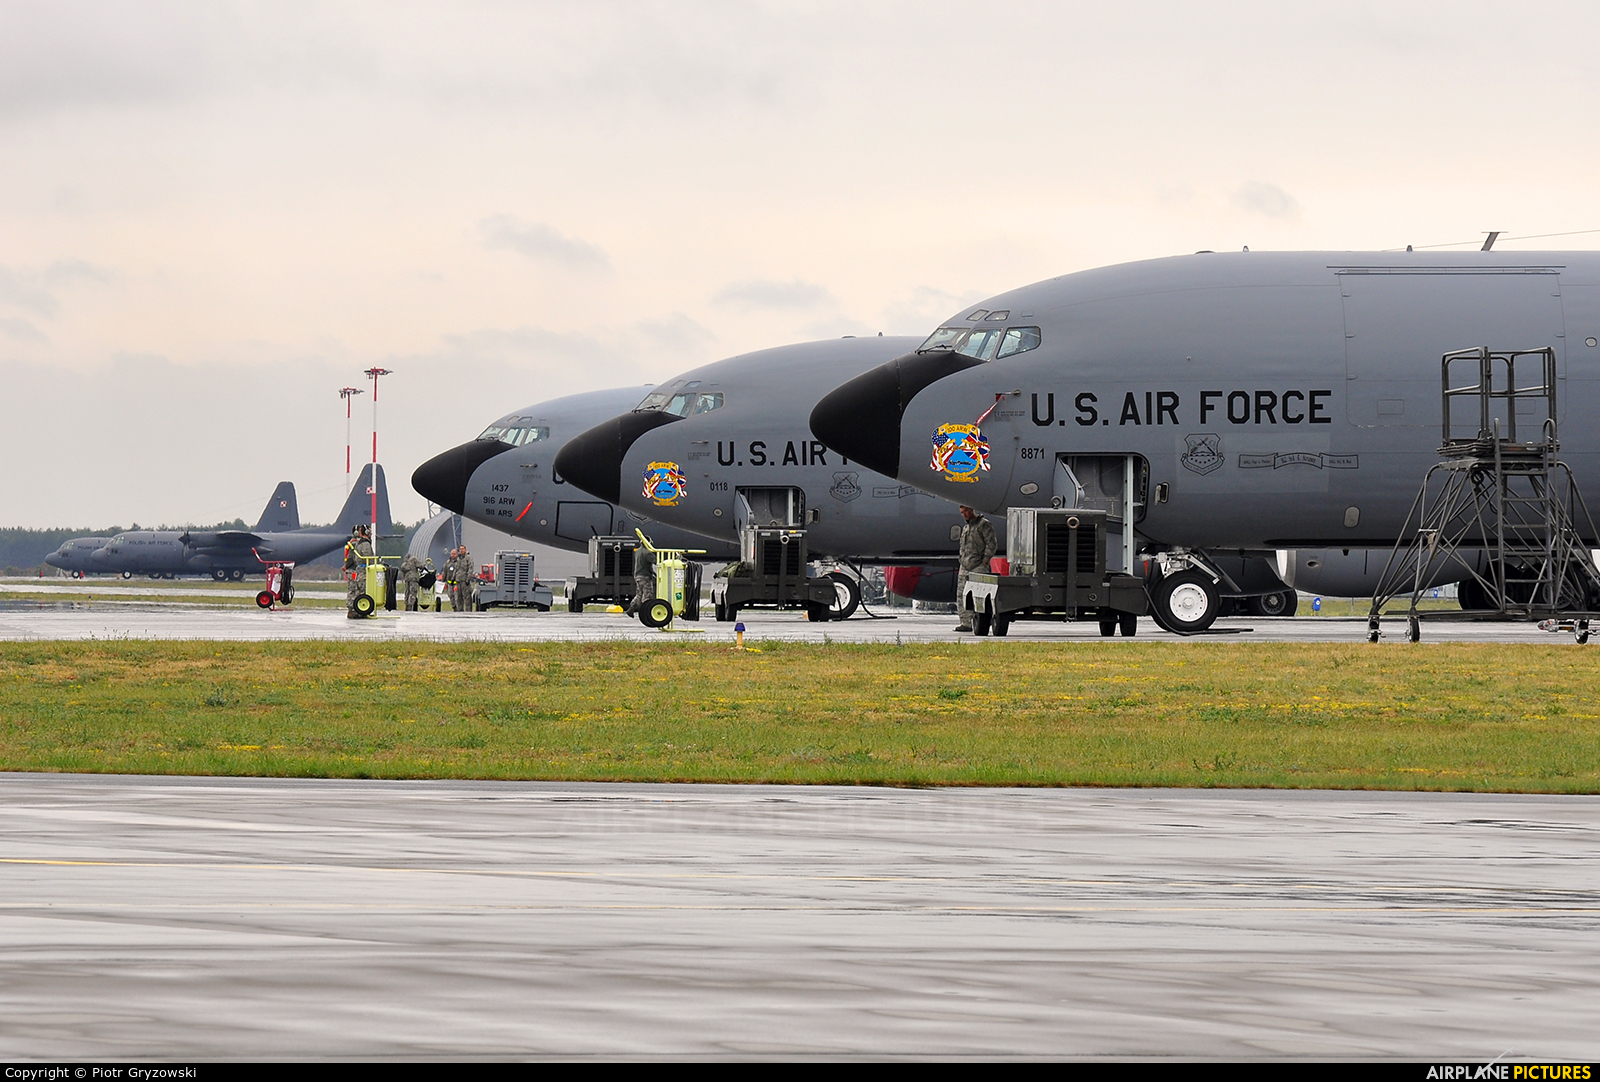 USA - Air Force 63-8871 aircraft at Powidz